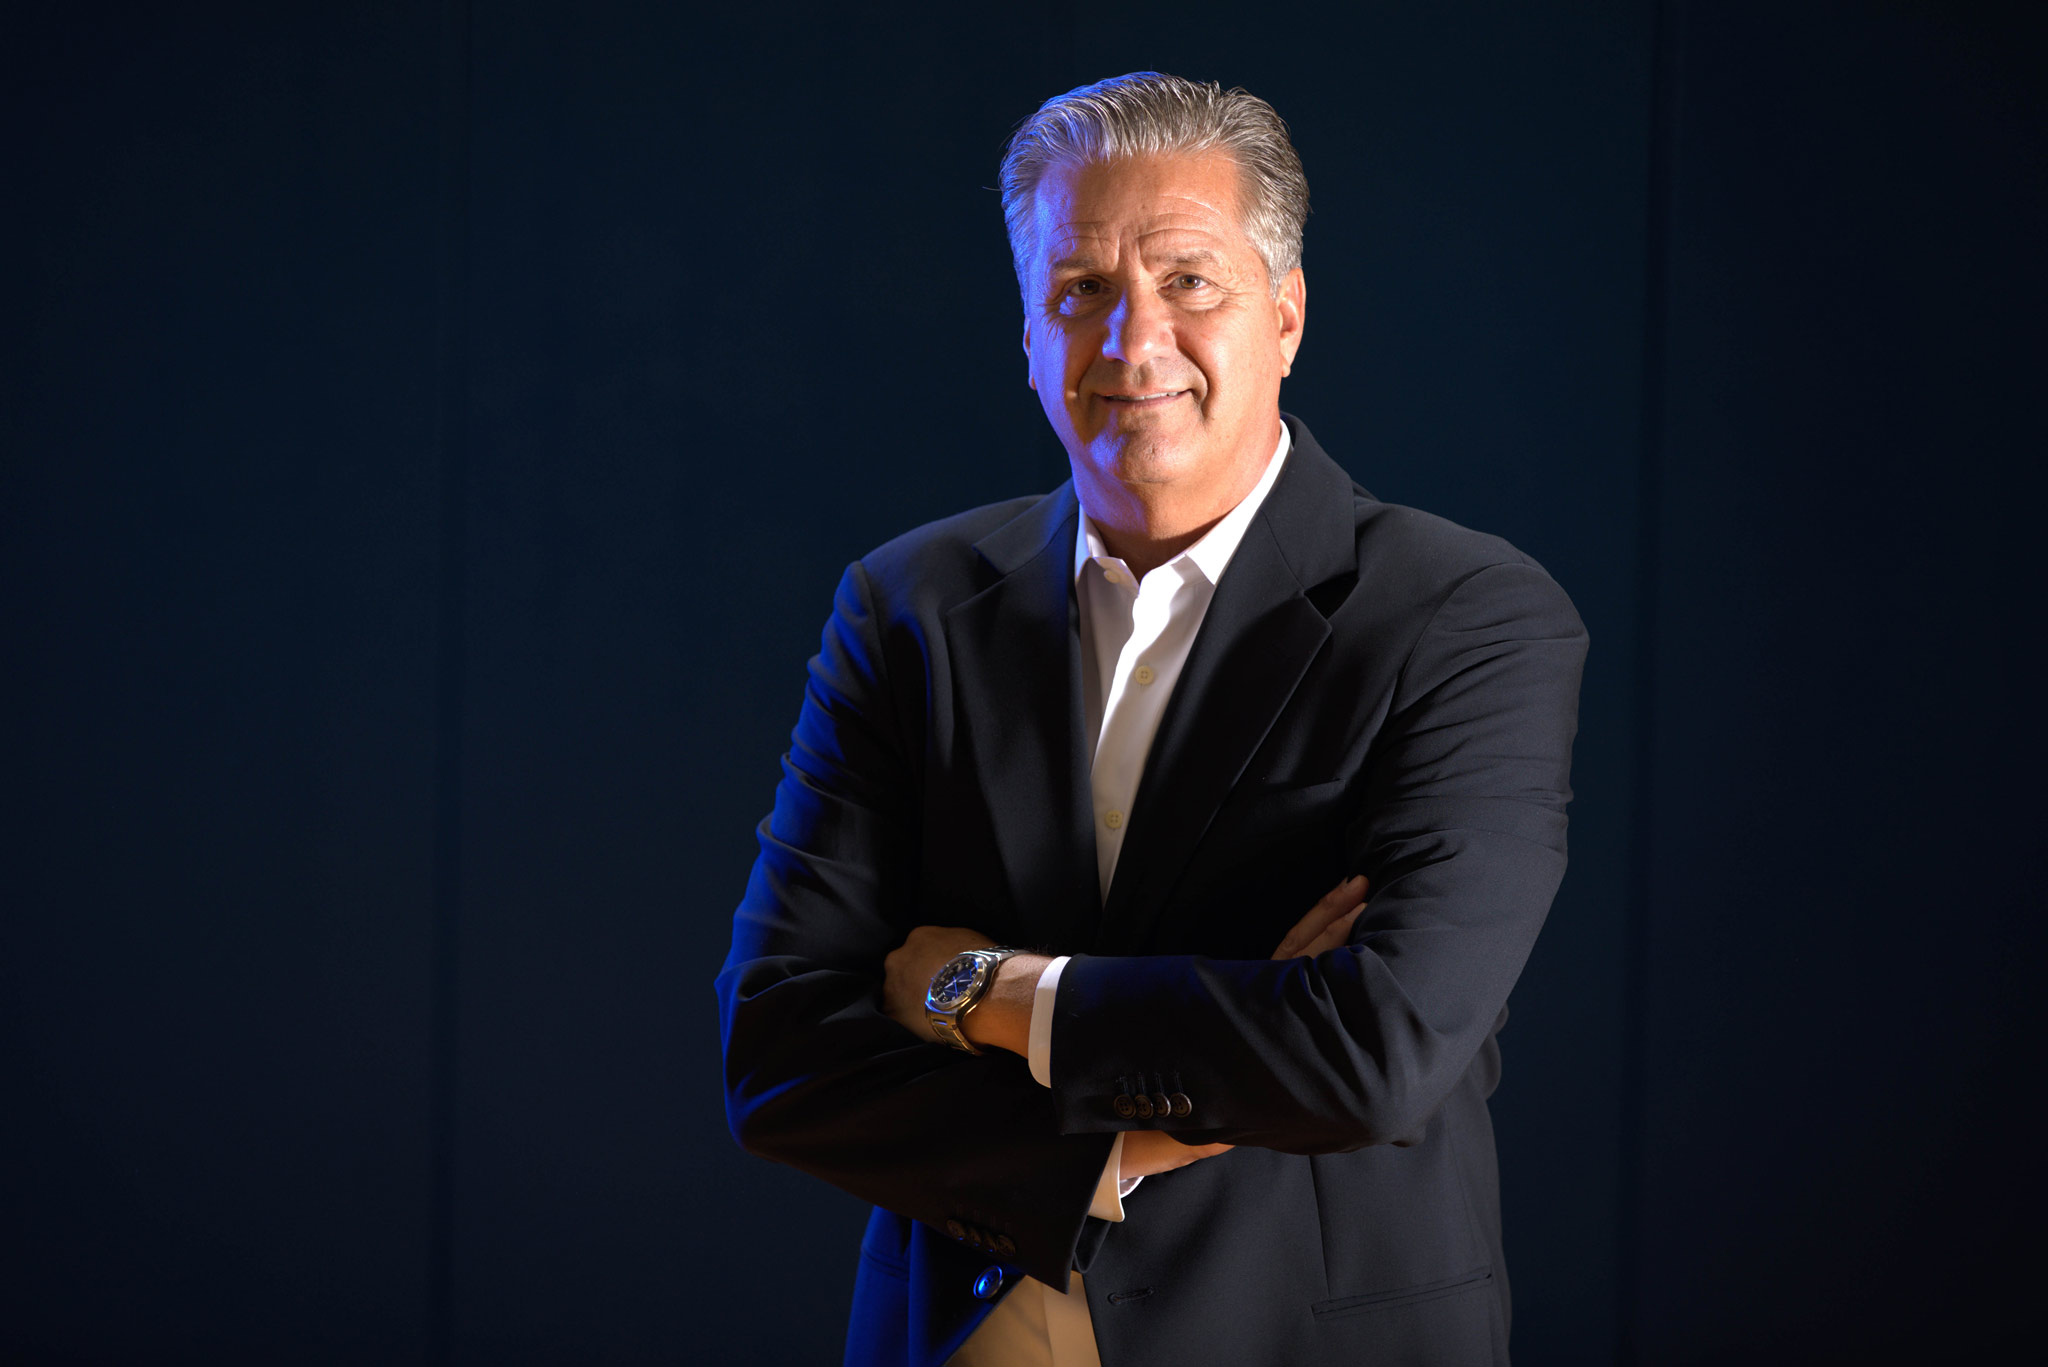 Coach Calipari wears a suit and poses for a portrait.